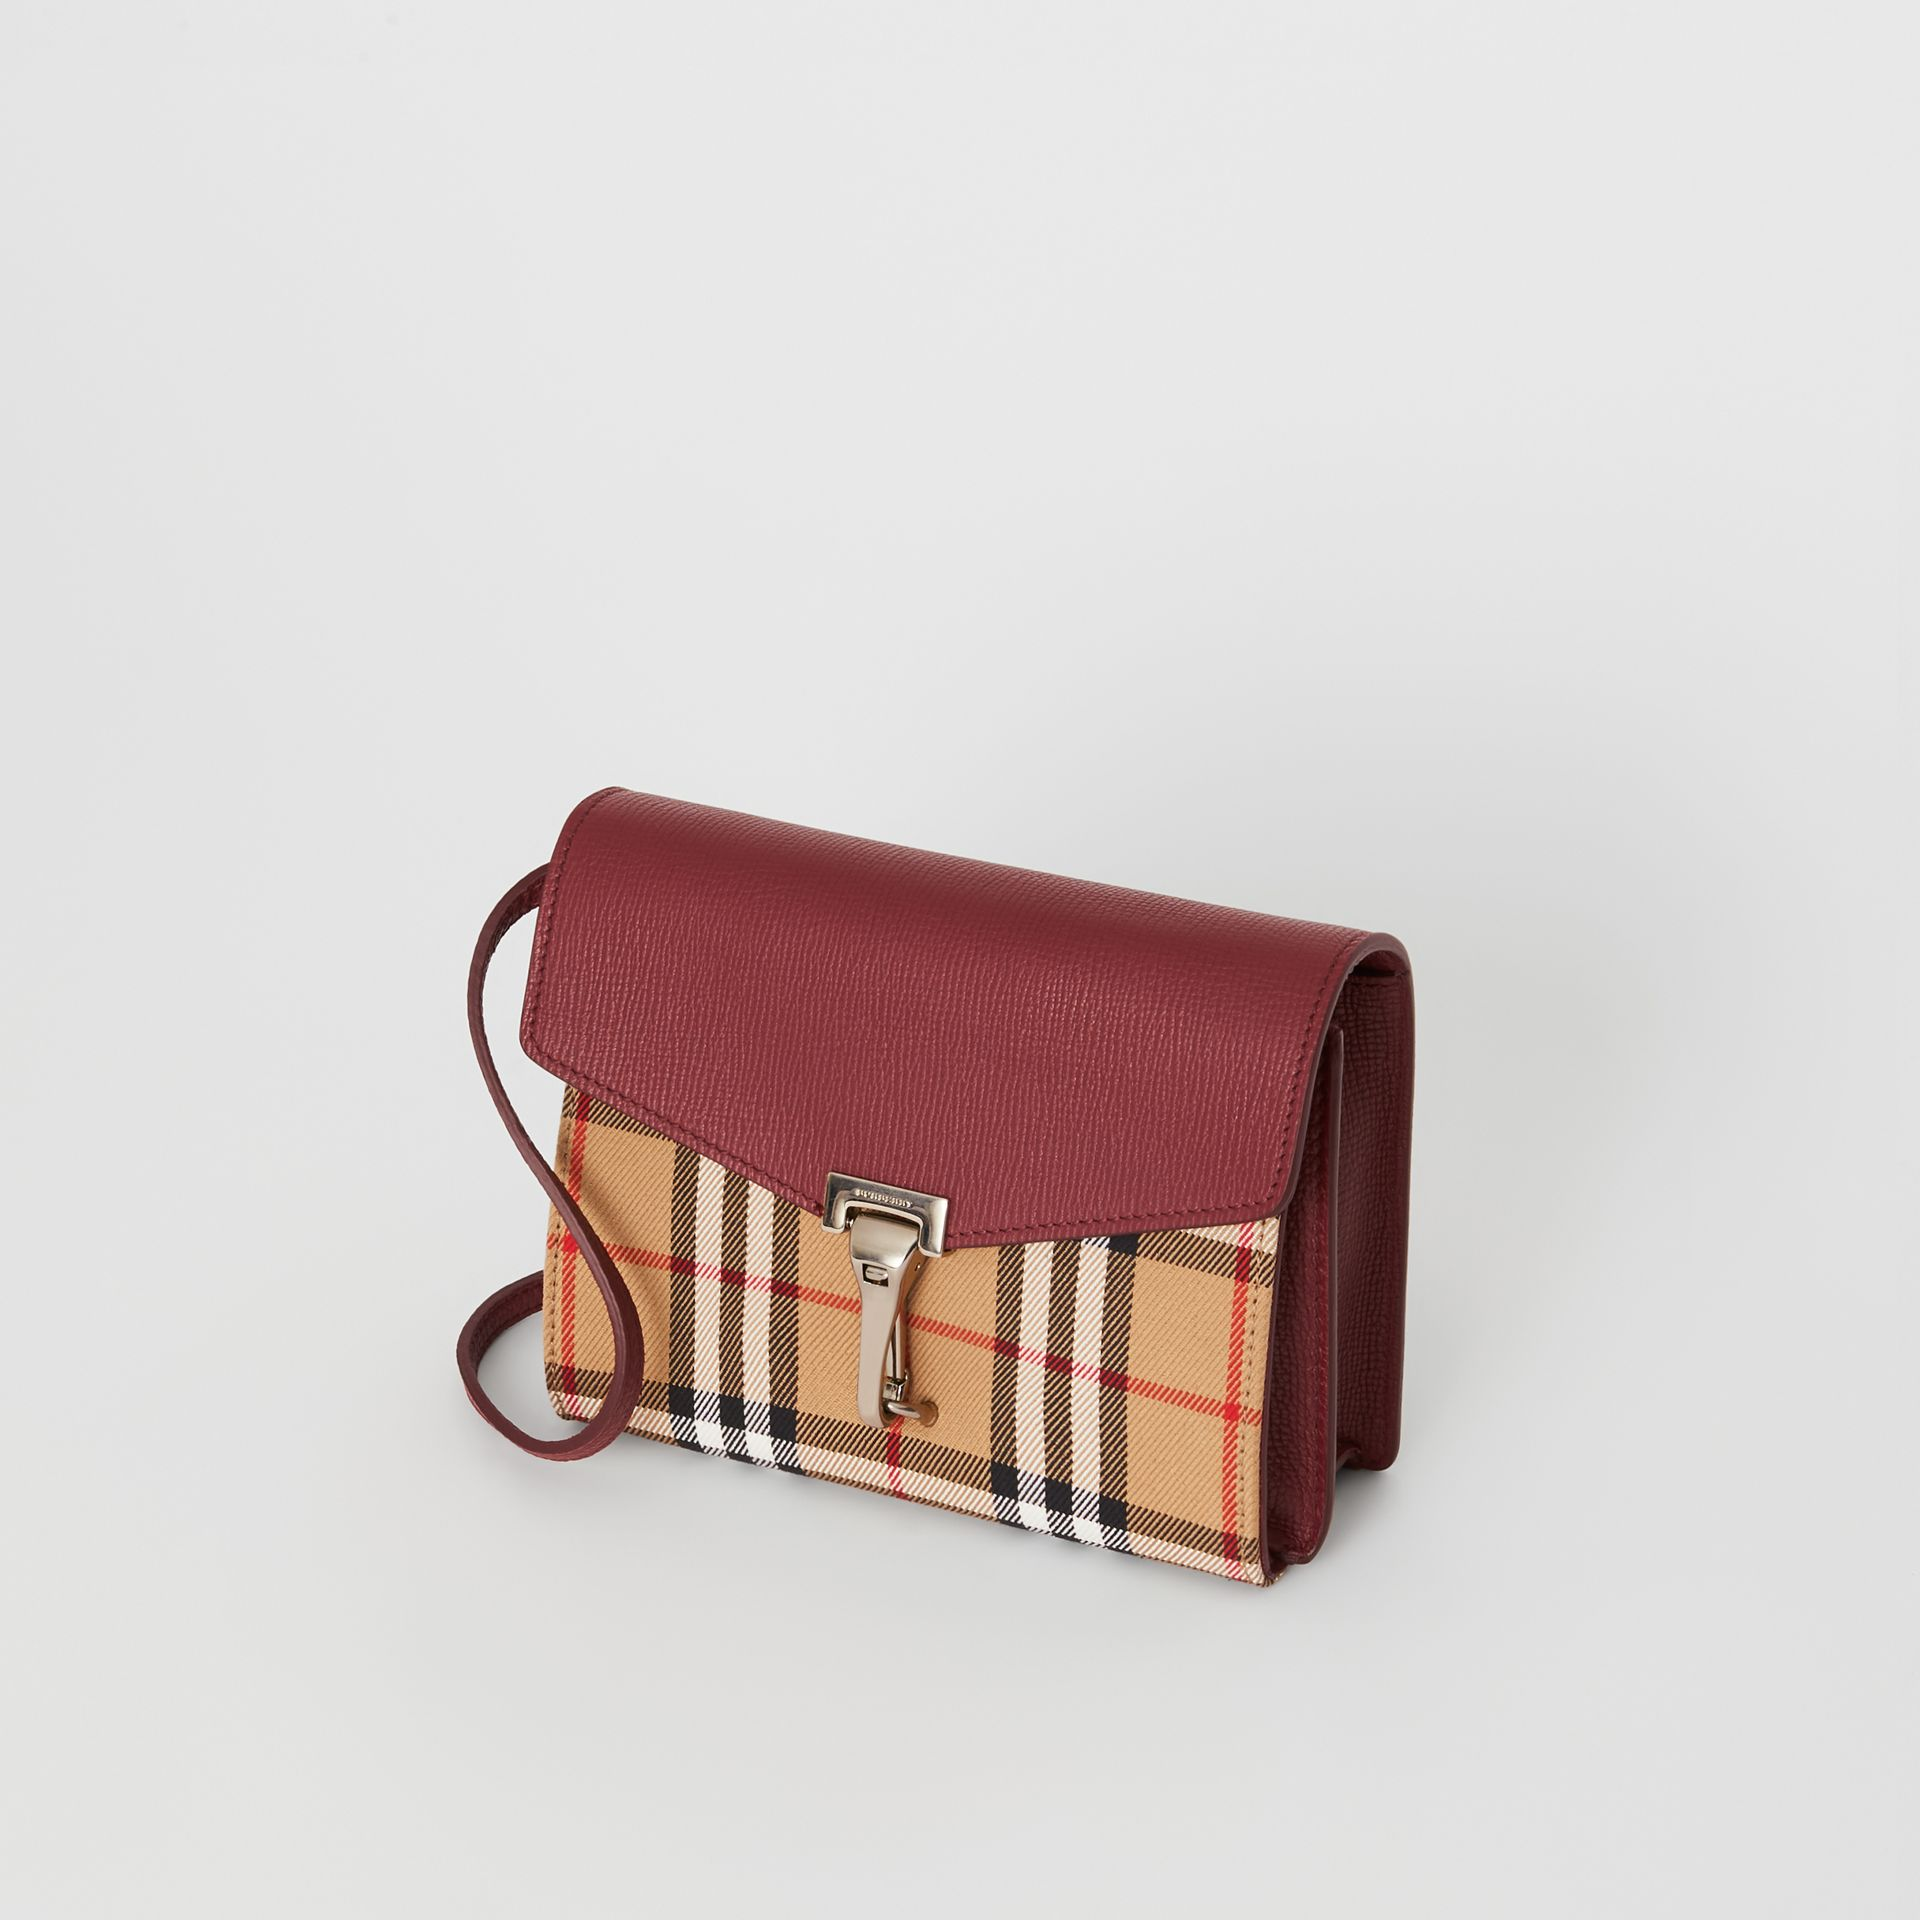 Mini Leather and Vintage Check Crossbody Bag in Crimson - Women | Burberry United Kingdom - gallery image 2